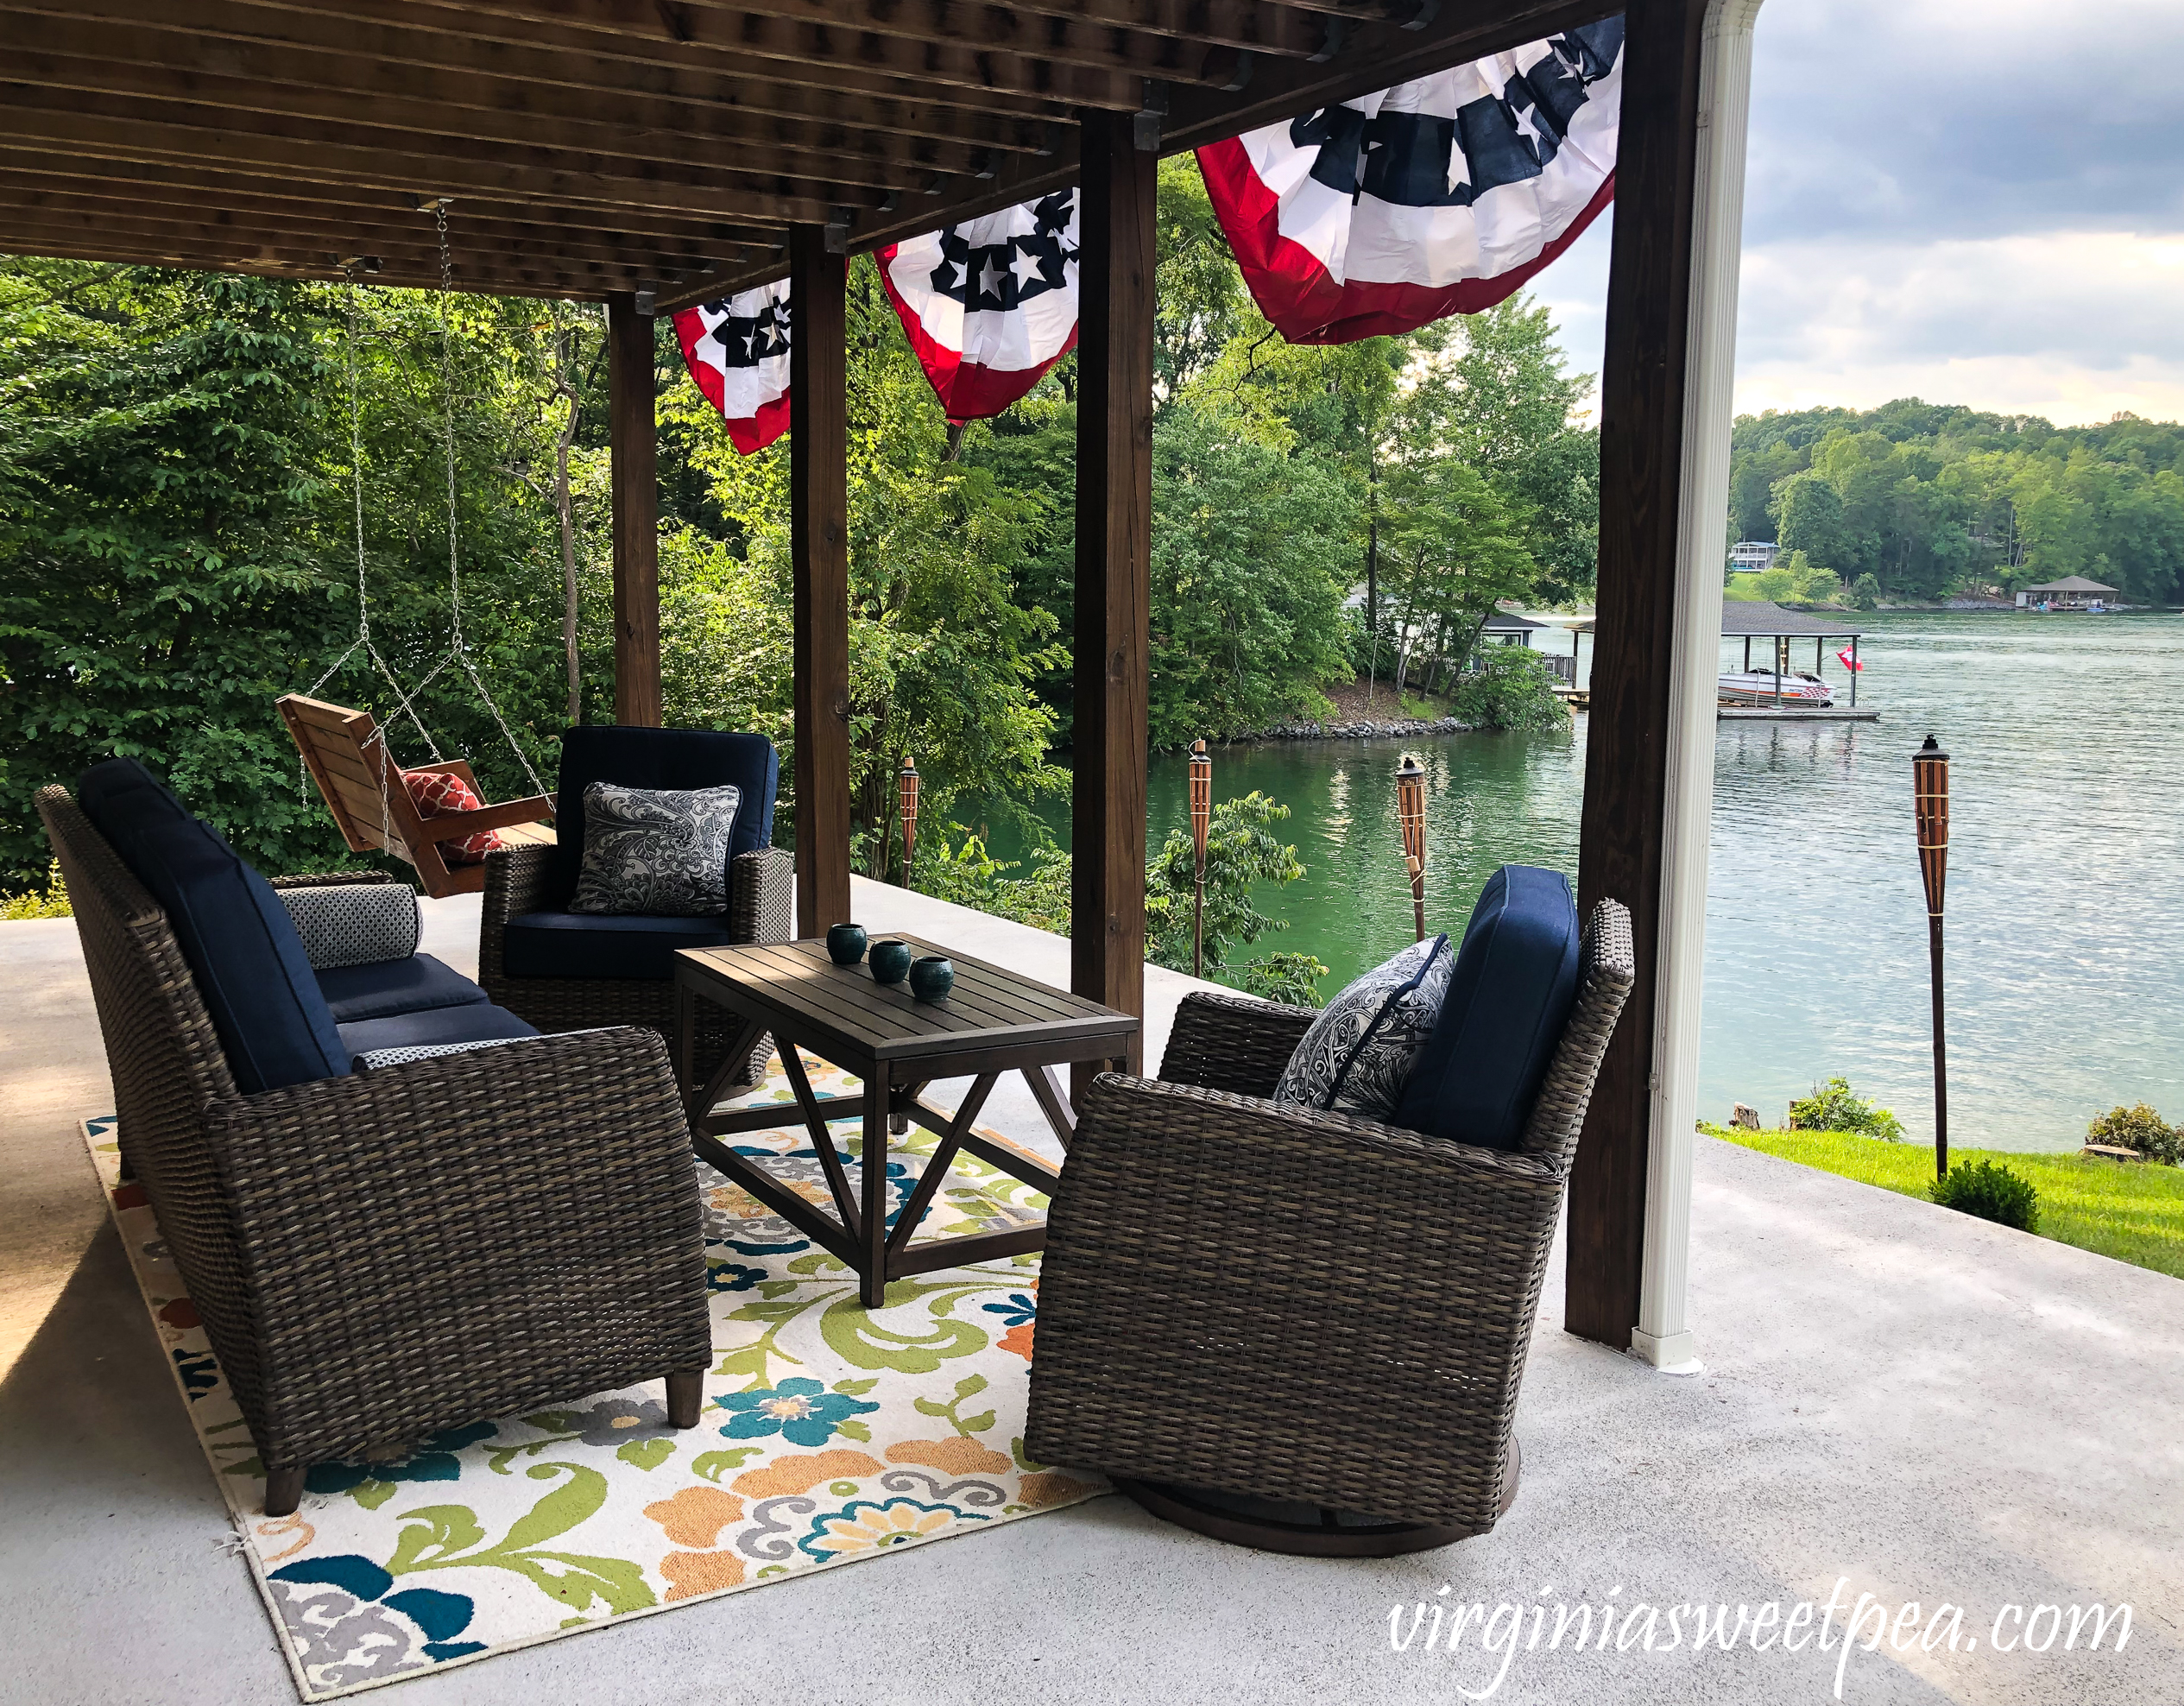 Patio with a view of Smith Mountain Lake in Virginia